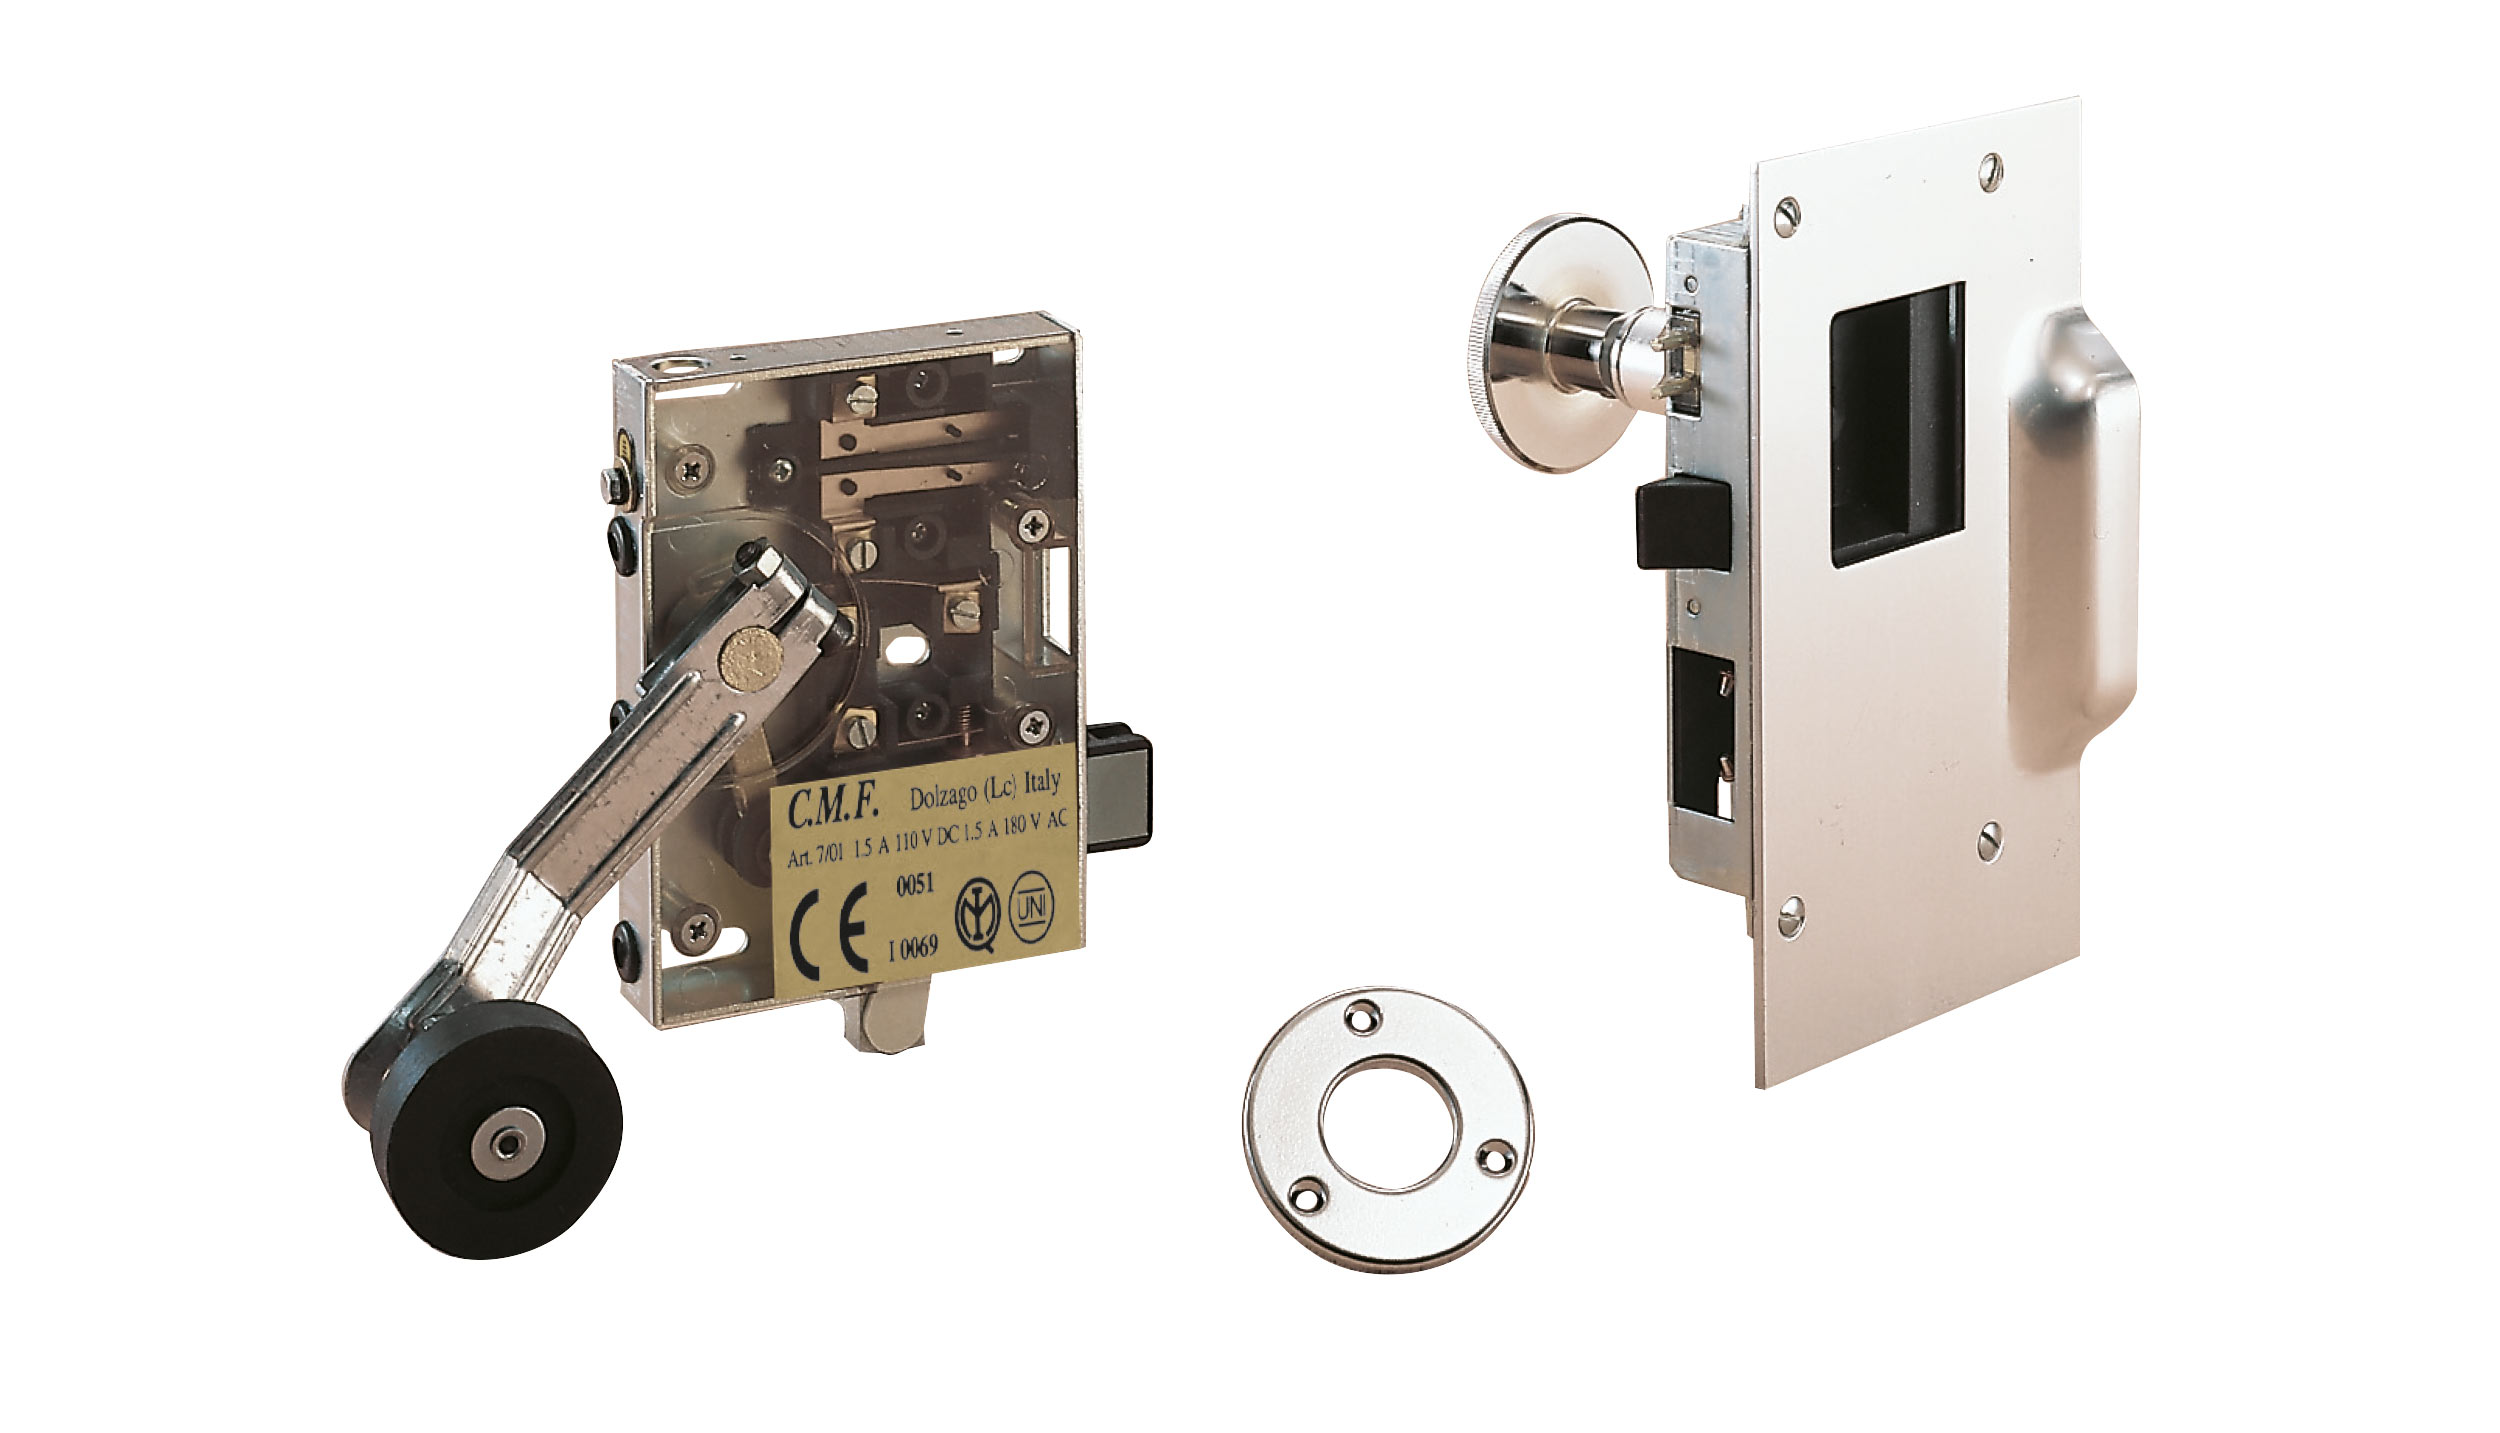 Manual enclosed homologated lock assembly with chrome finish